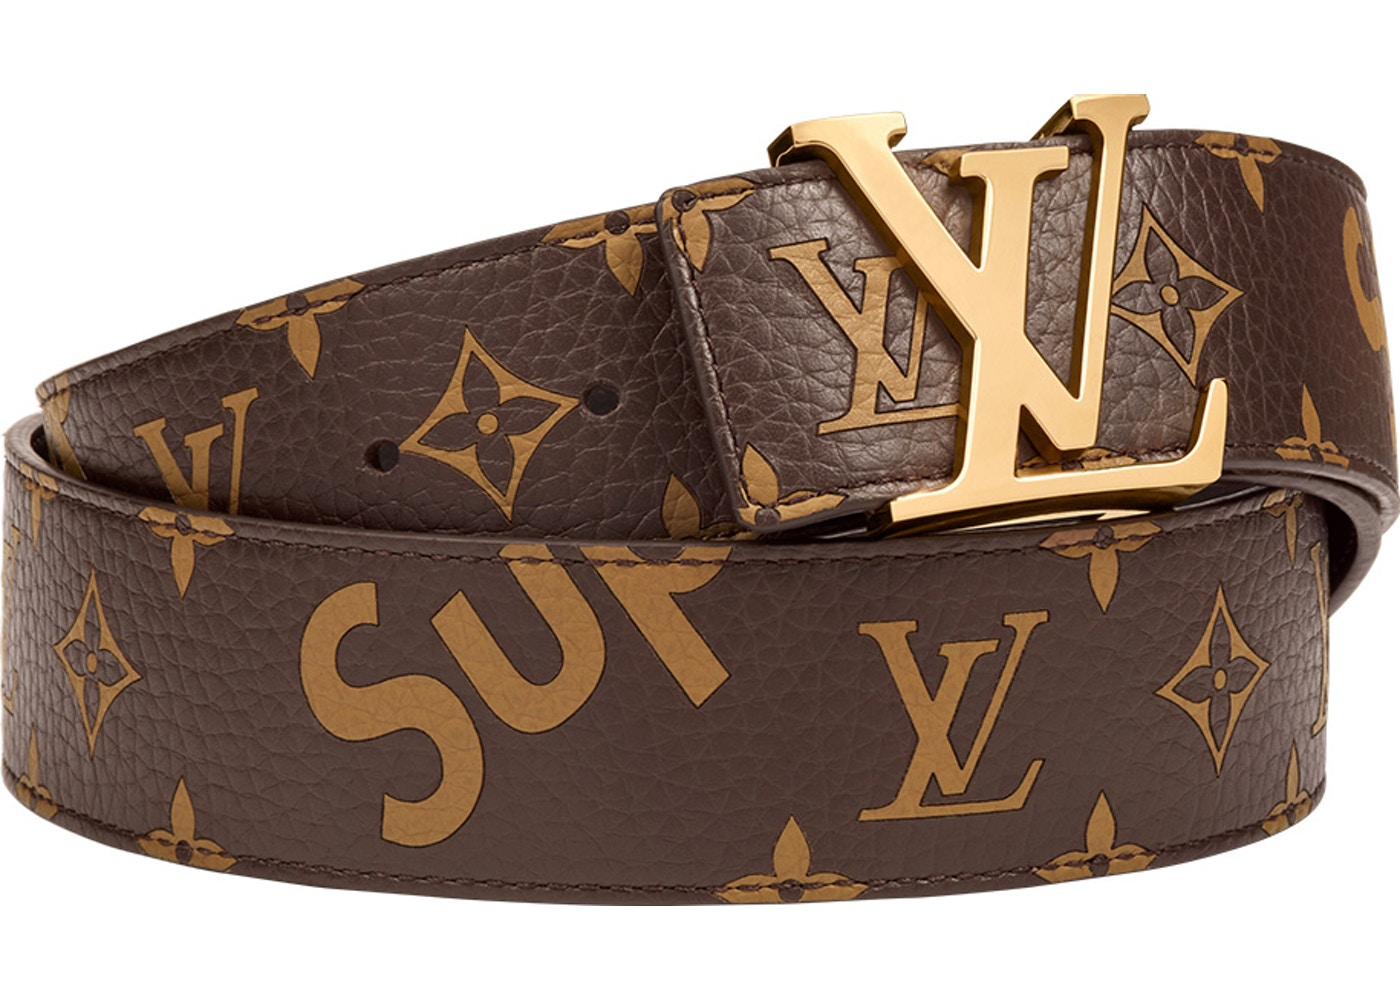 Louis Vuitton x Supreme Initiales Belt 40 MM Monogram Brown Gold 7f21b566a5dd